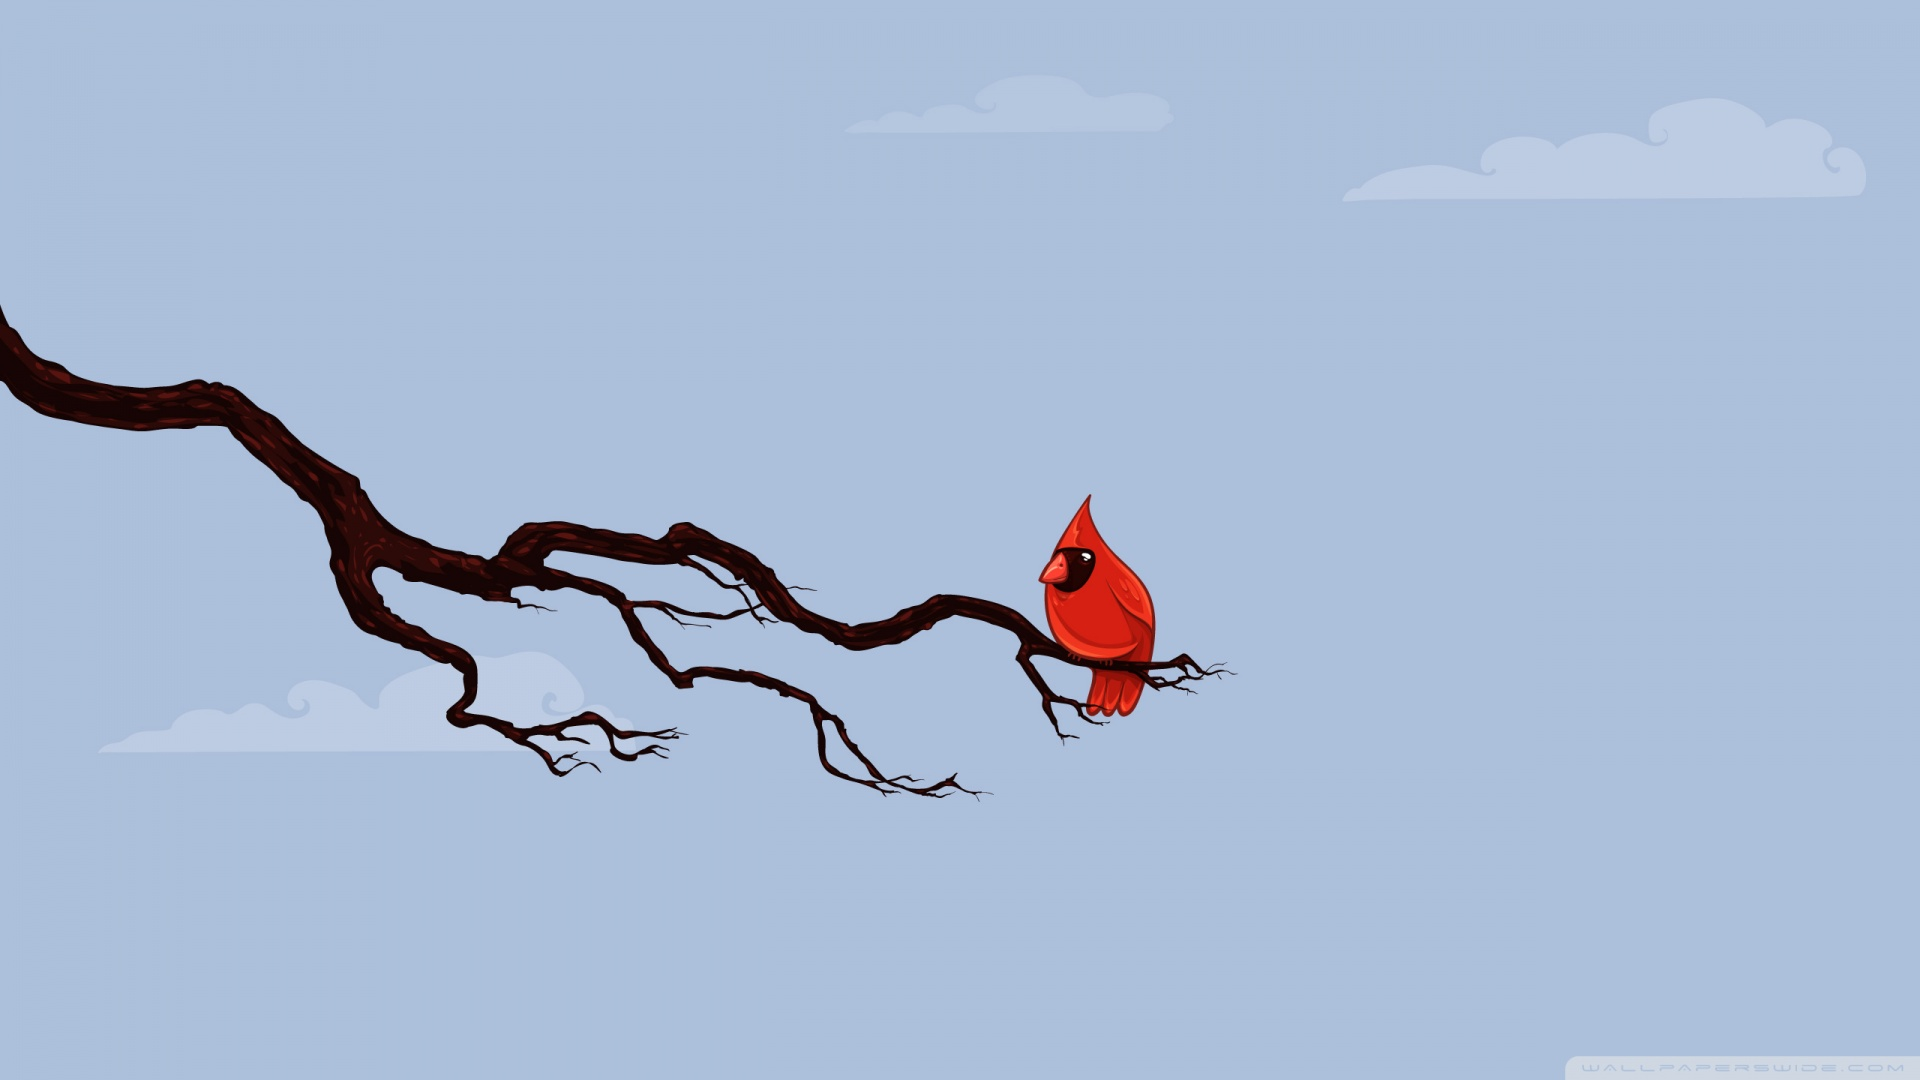 Bird-Vector-Art-1920x1080-Cardinal-Bird-Vector-Art-HD-Wide-for-Widescreen-wallpaper-wpc9002903